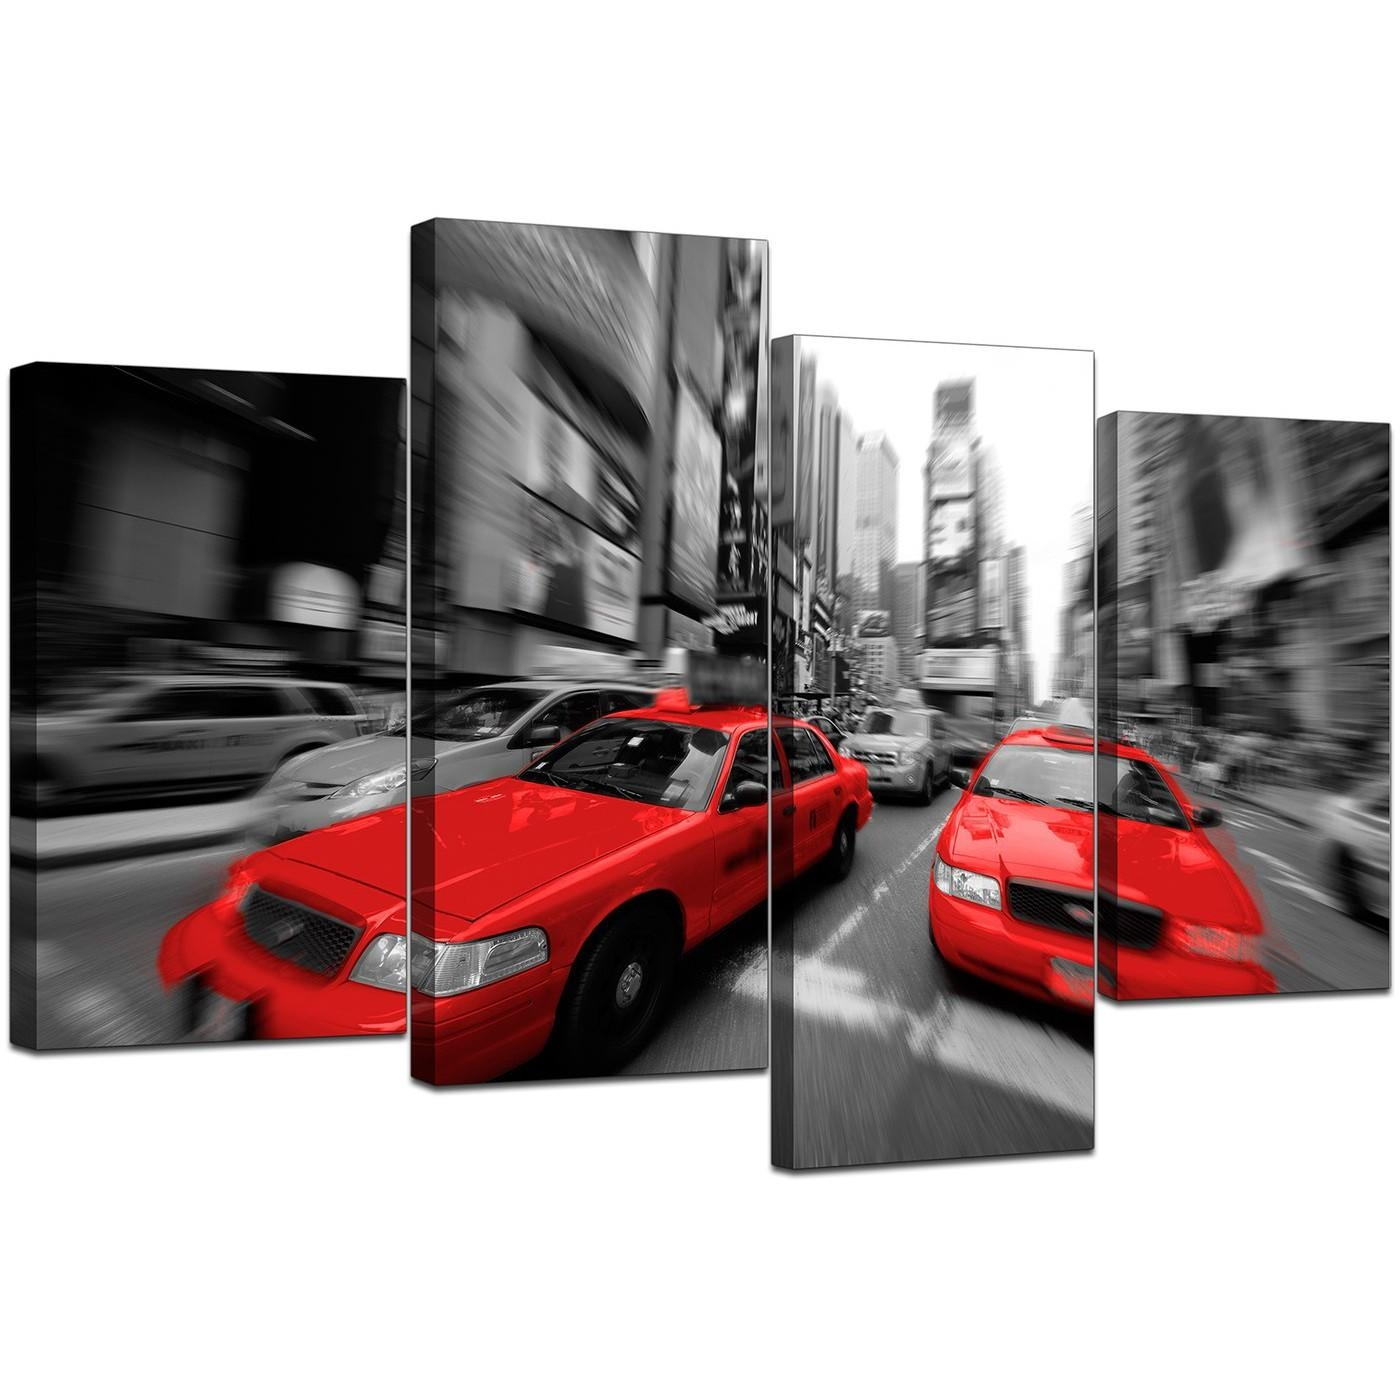 New York Canvas Prints In Black White & Red – For Living Room Regarding Red And Black Canvas Wall Art (Image 14 of 20)